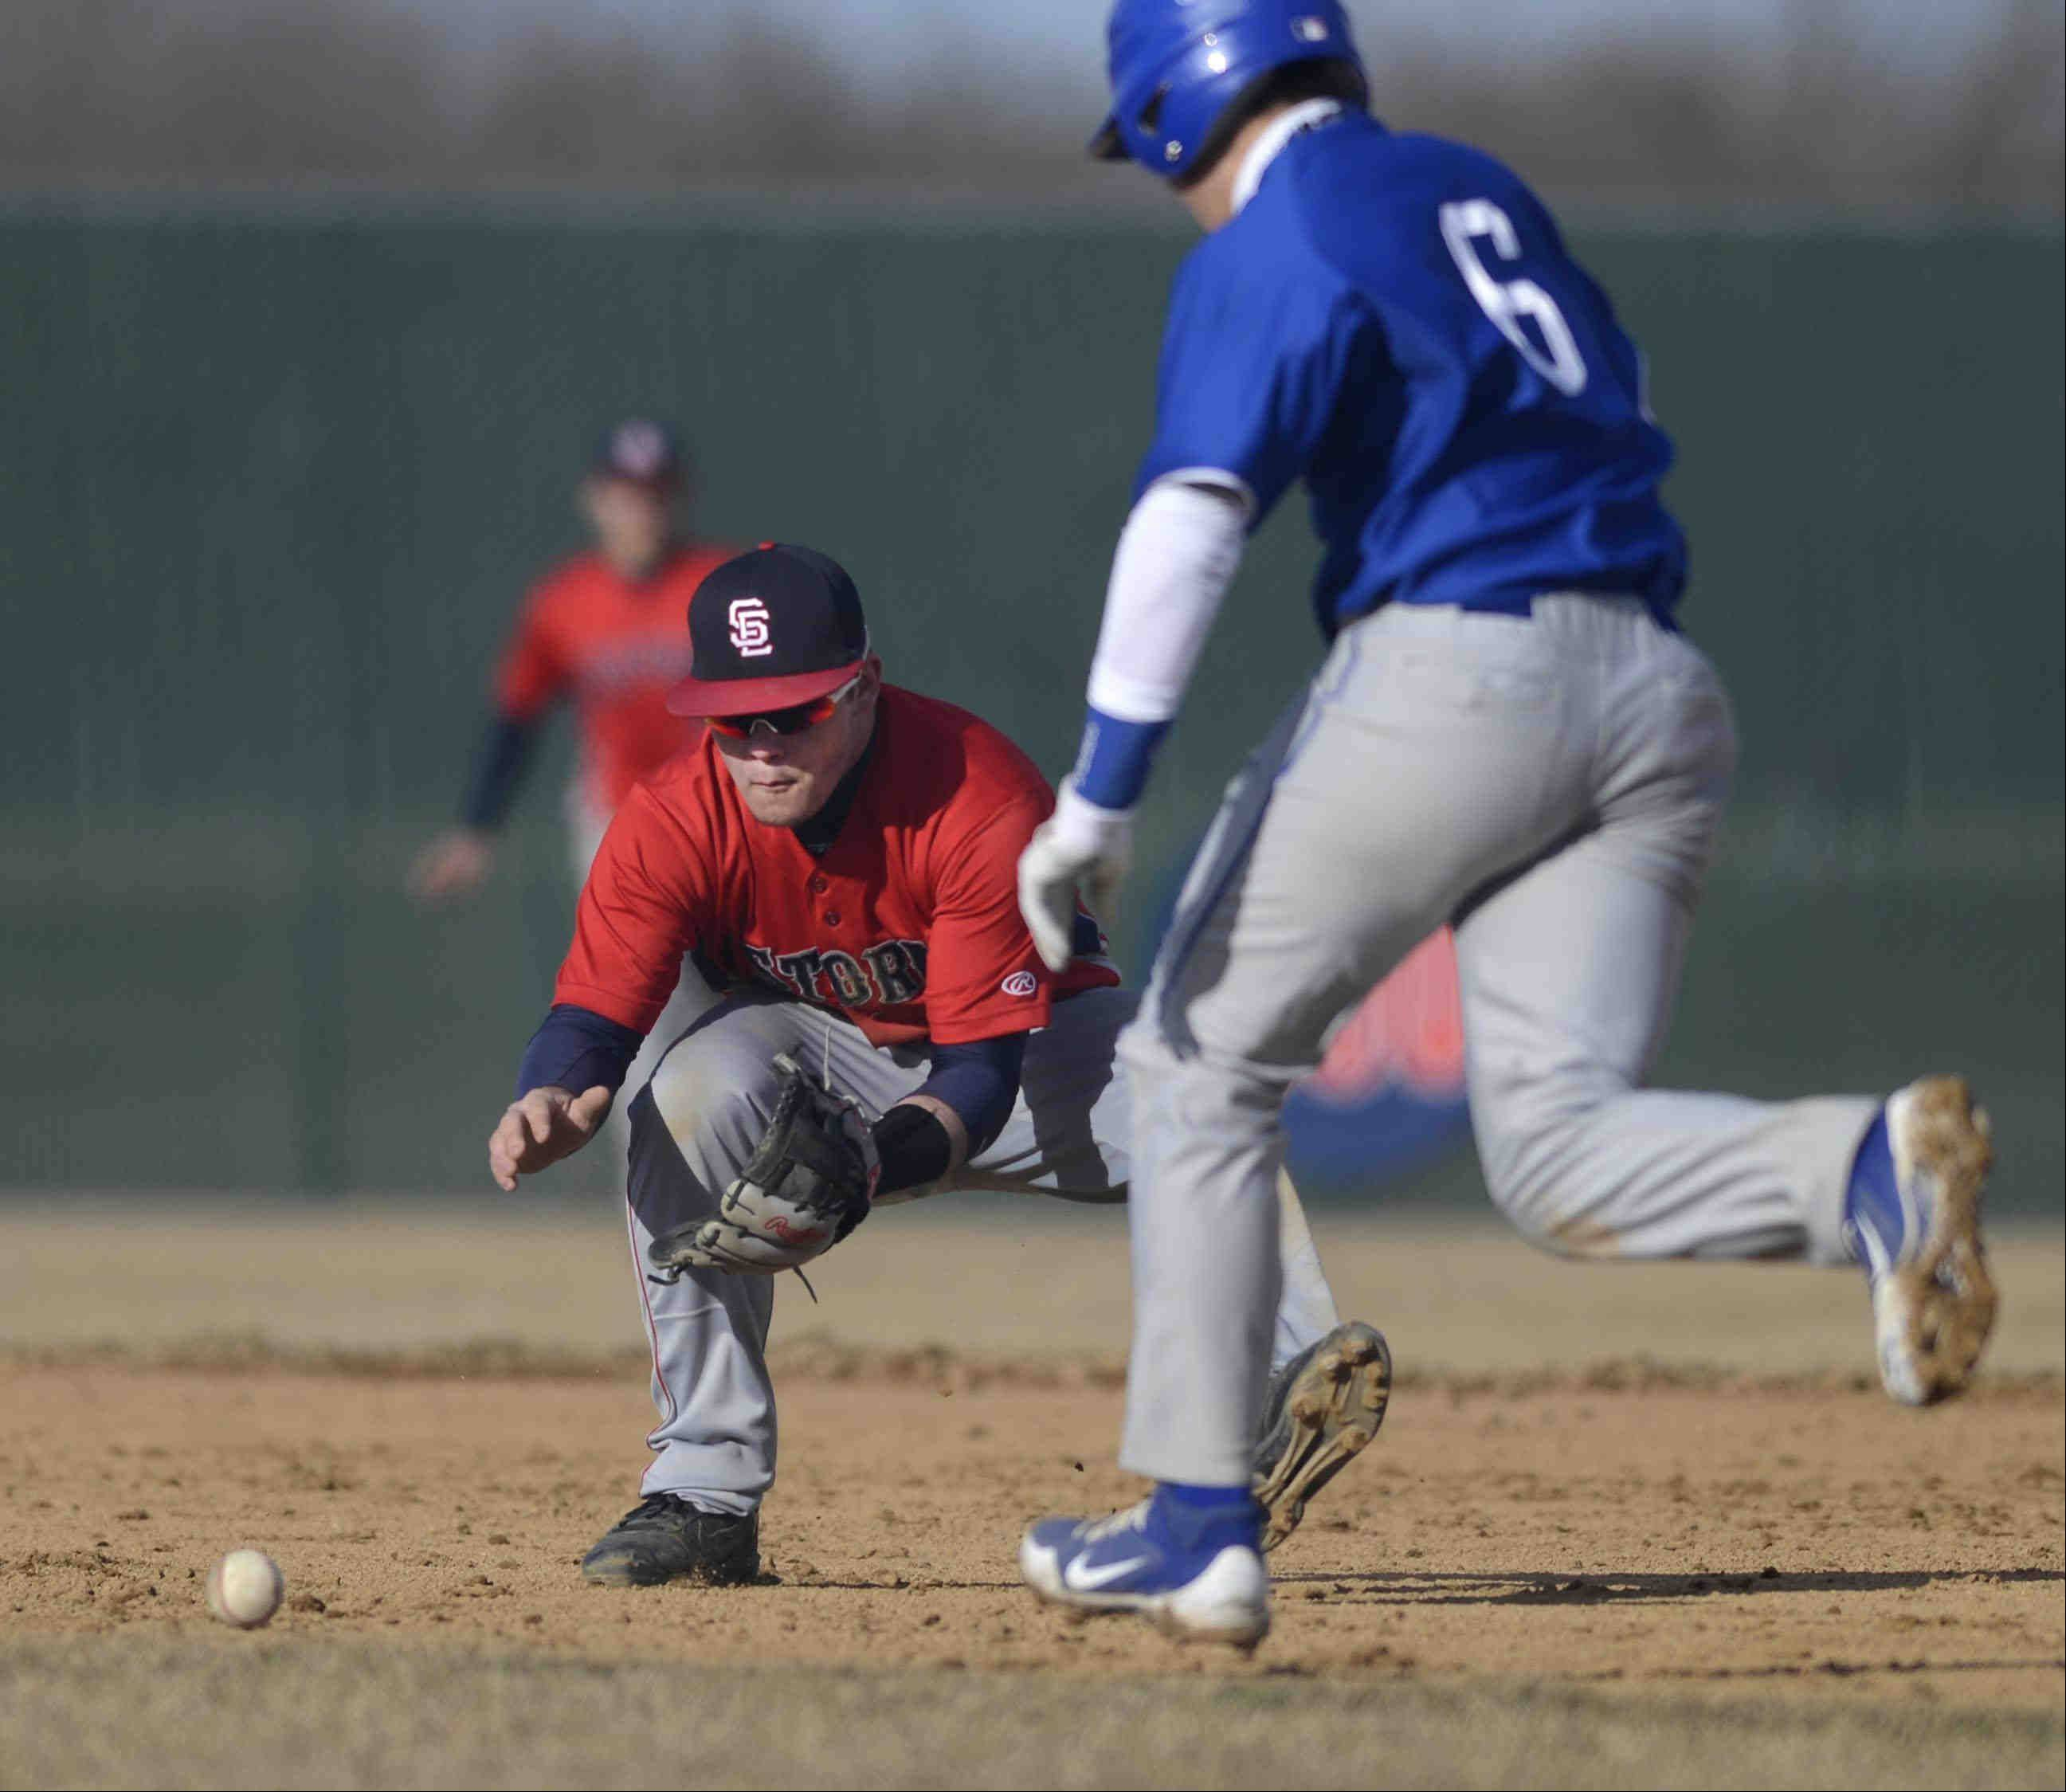 South Elgin second baseman Riley Halter concentrates on a ground ball by Larkin's Jack McCracken as Larkin baserunner Dan Lenz crosses his path in the second inning Tuesday in South Elgin. Halter made the play on McCracken.